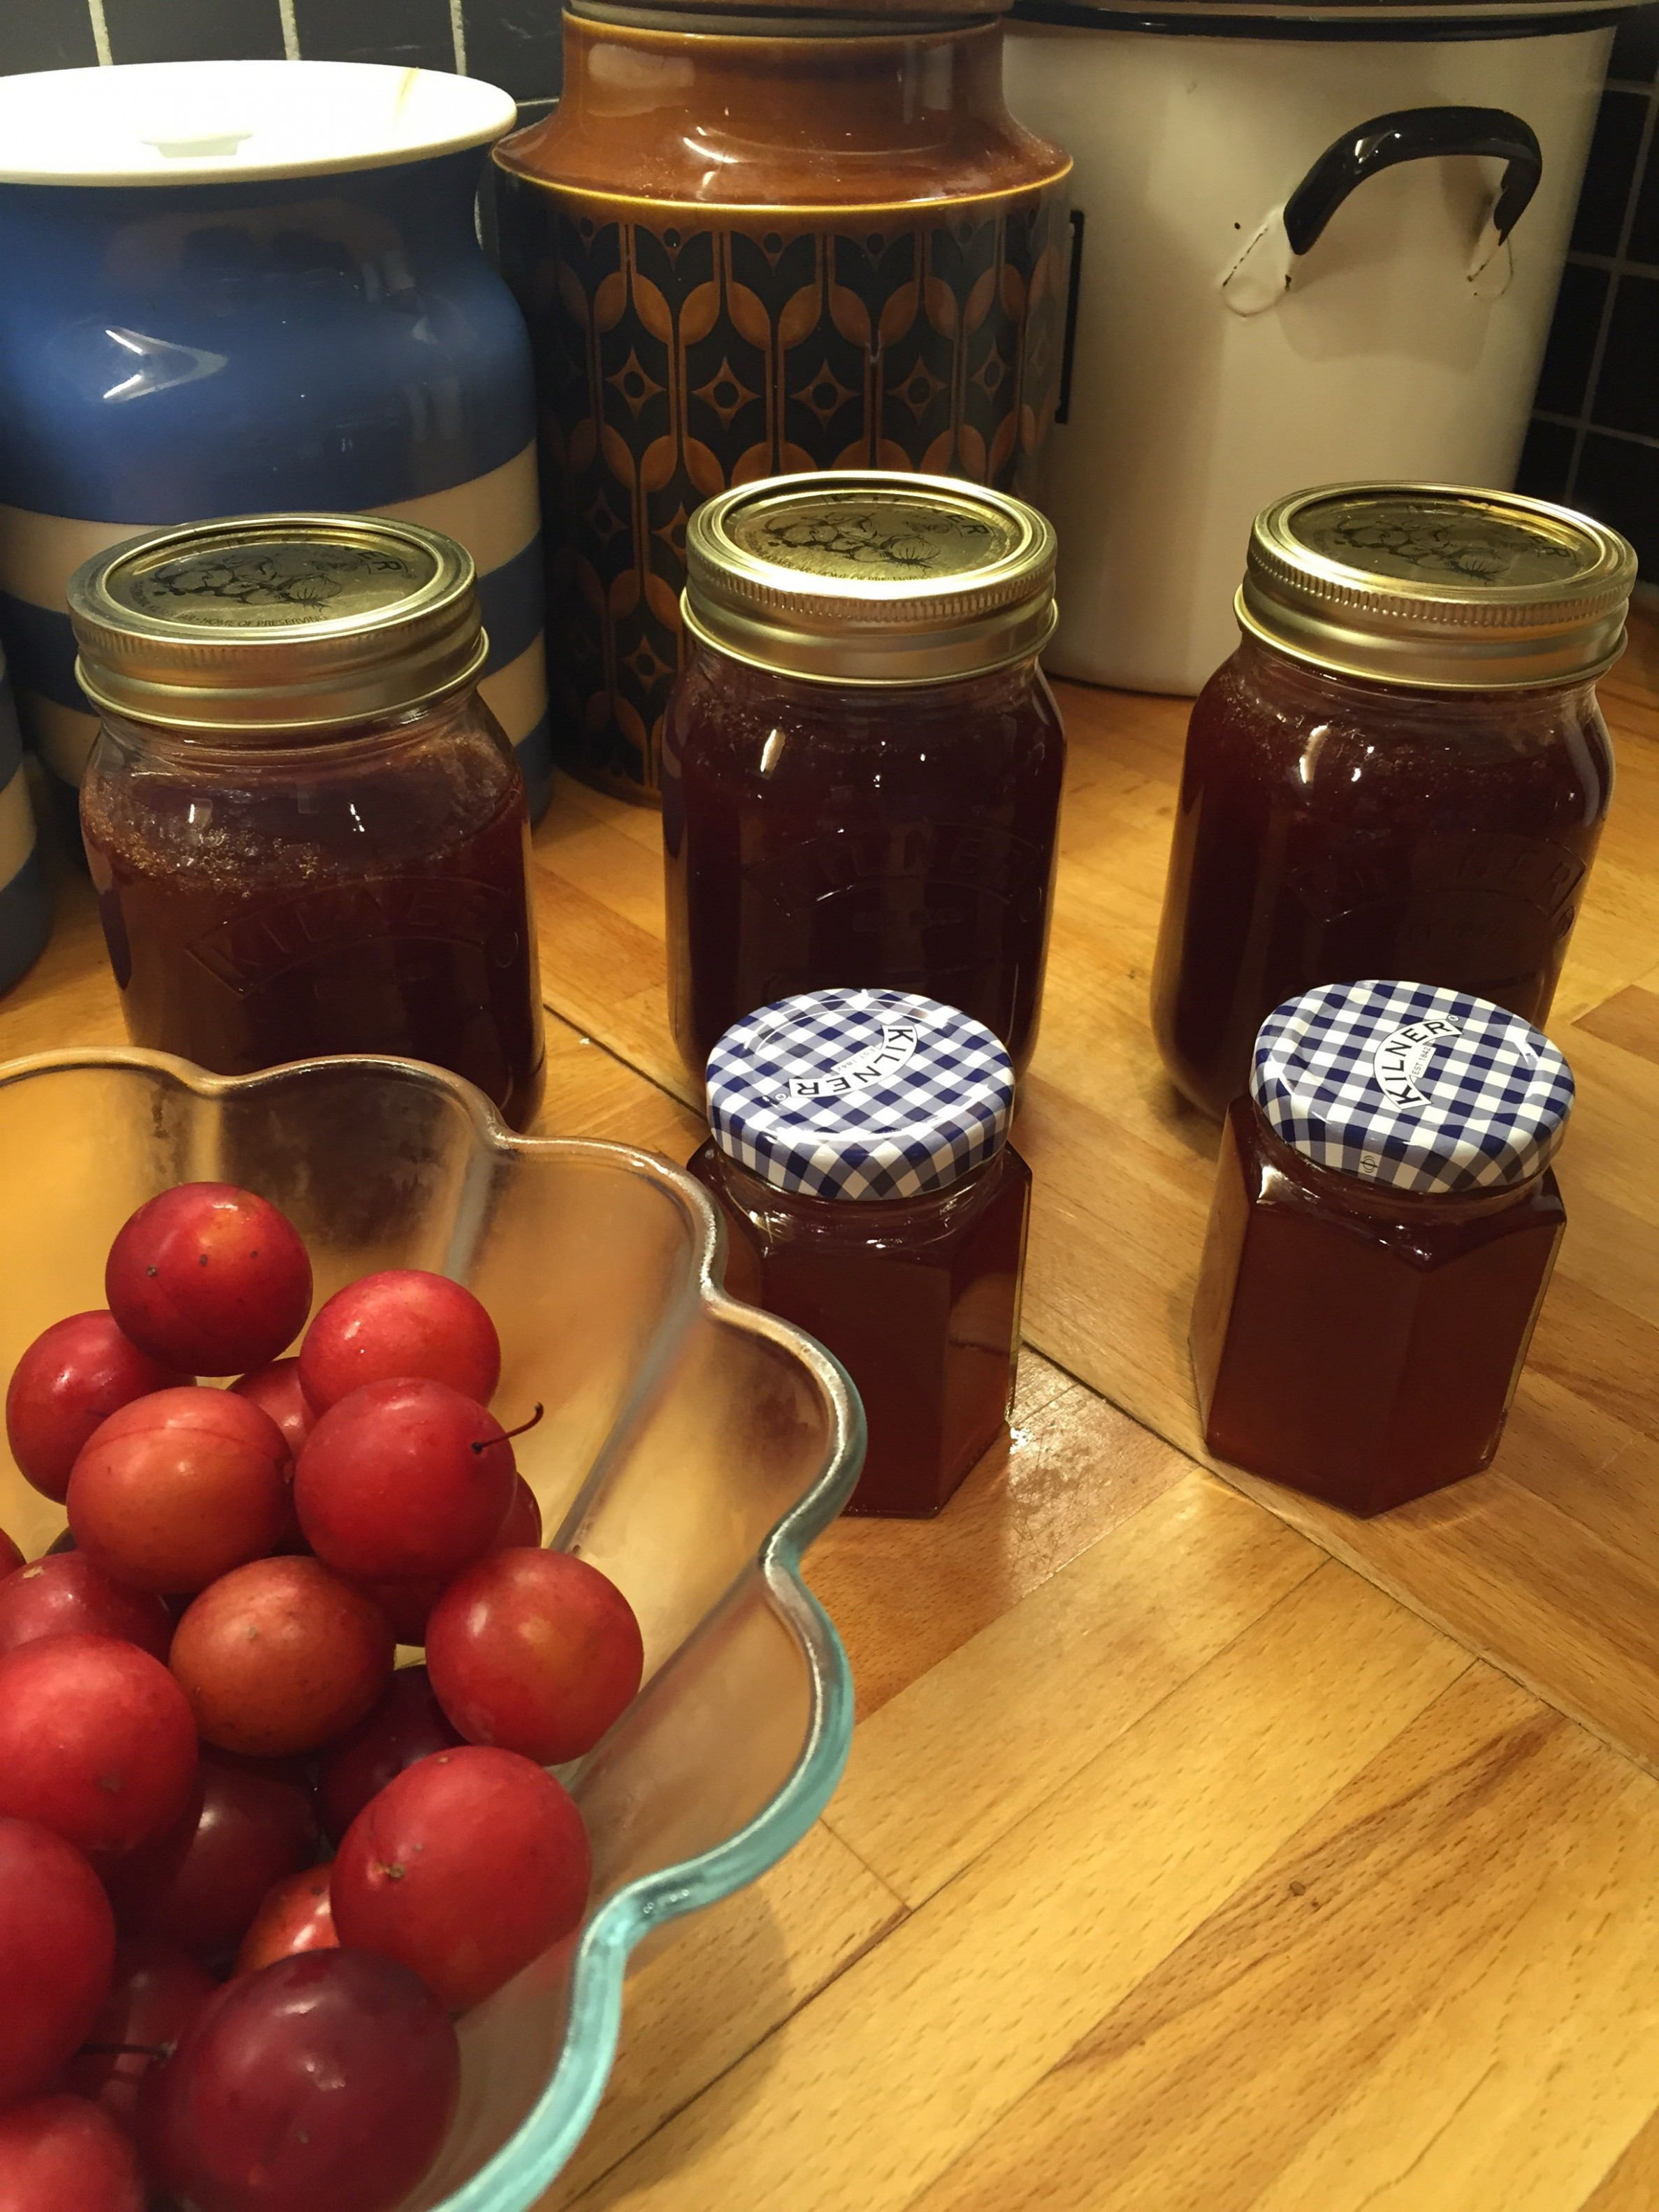 Simple plum jam recipe - All recipes UK